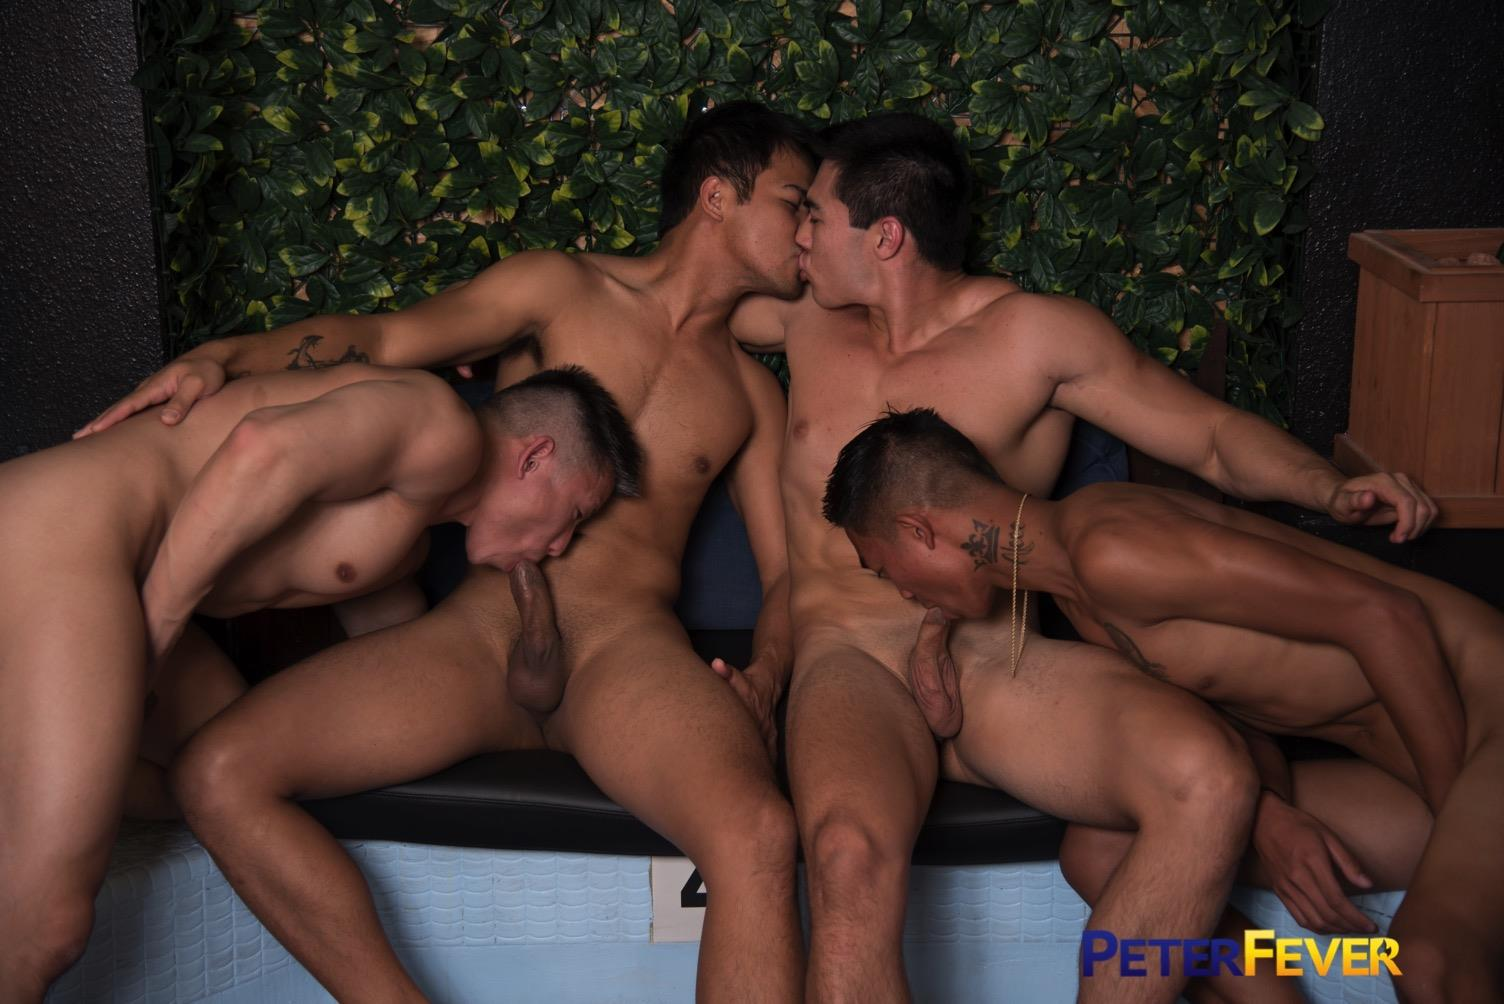 Peter-Fever-John-Rene-and-Alec-Cruz-and-Axel-Kane-and-Jessie-Lee-Big-Asian-Cocks-12 Impromptu Asian Orgy At An Asian Bathhouse